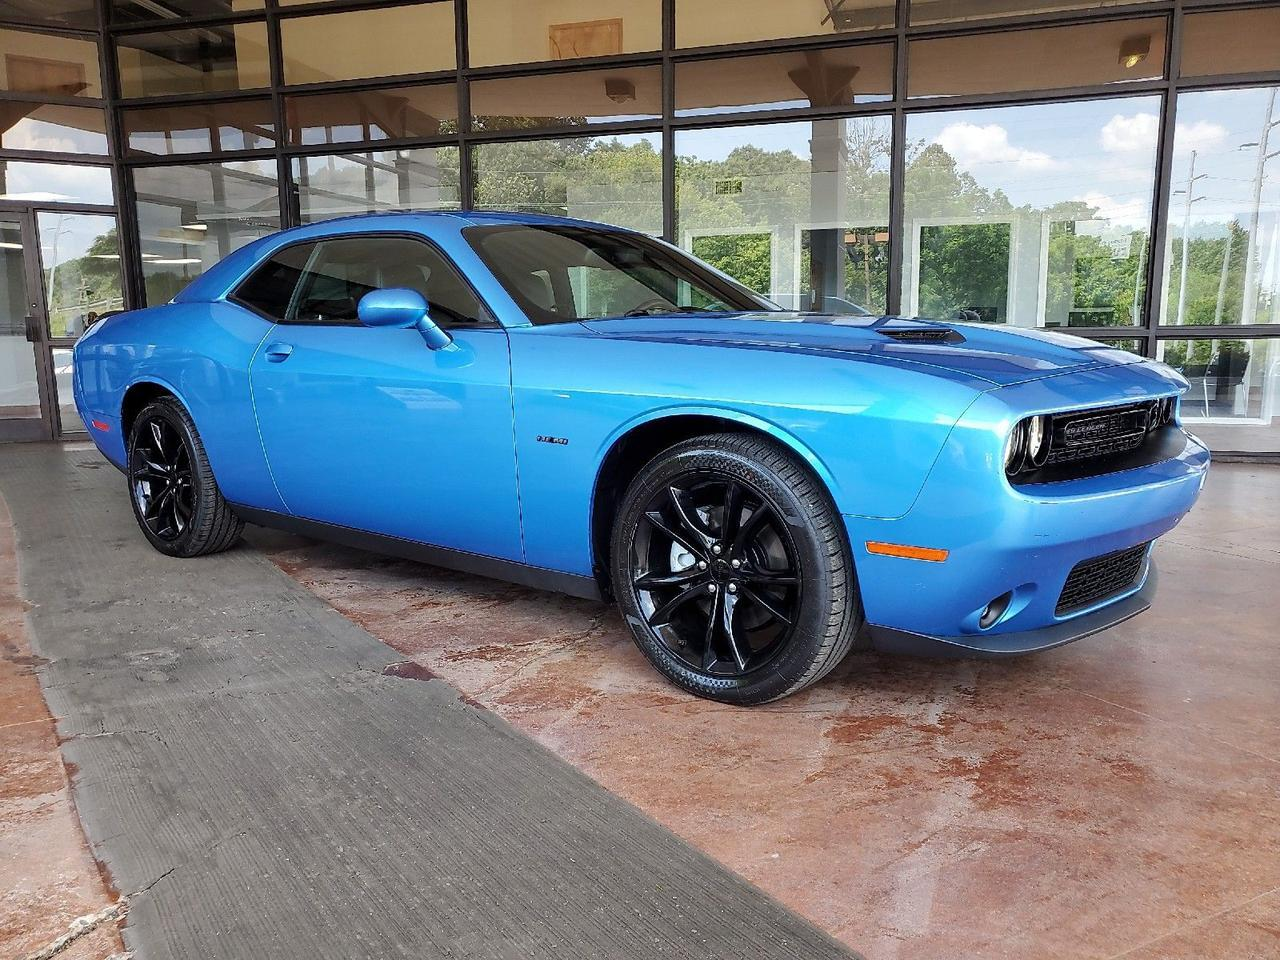 2016 Dodge Challenger B5 Blue R/T Plus R/T Plus Denver NC